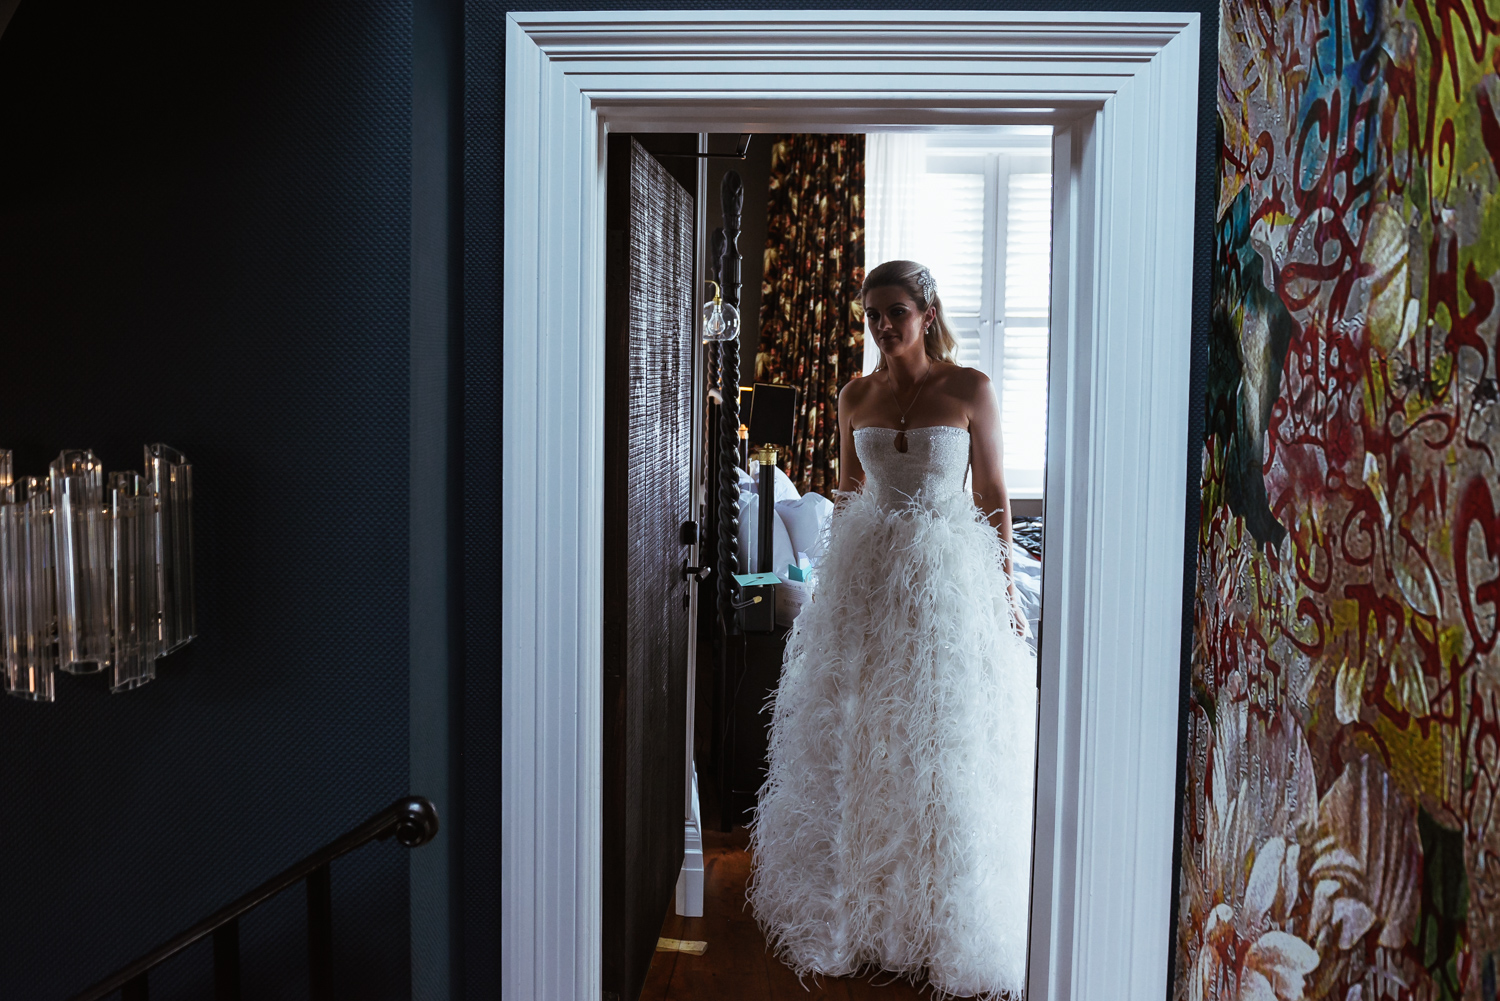 Bride revealing dress to her father